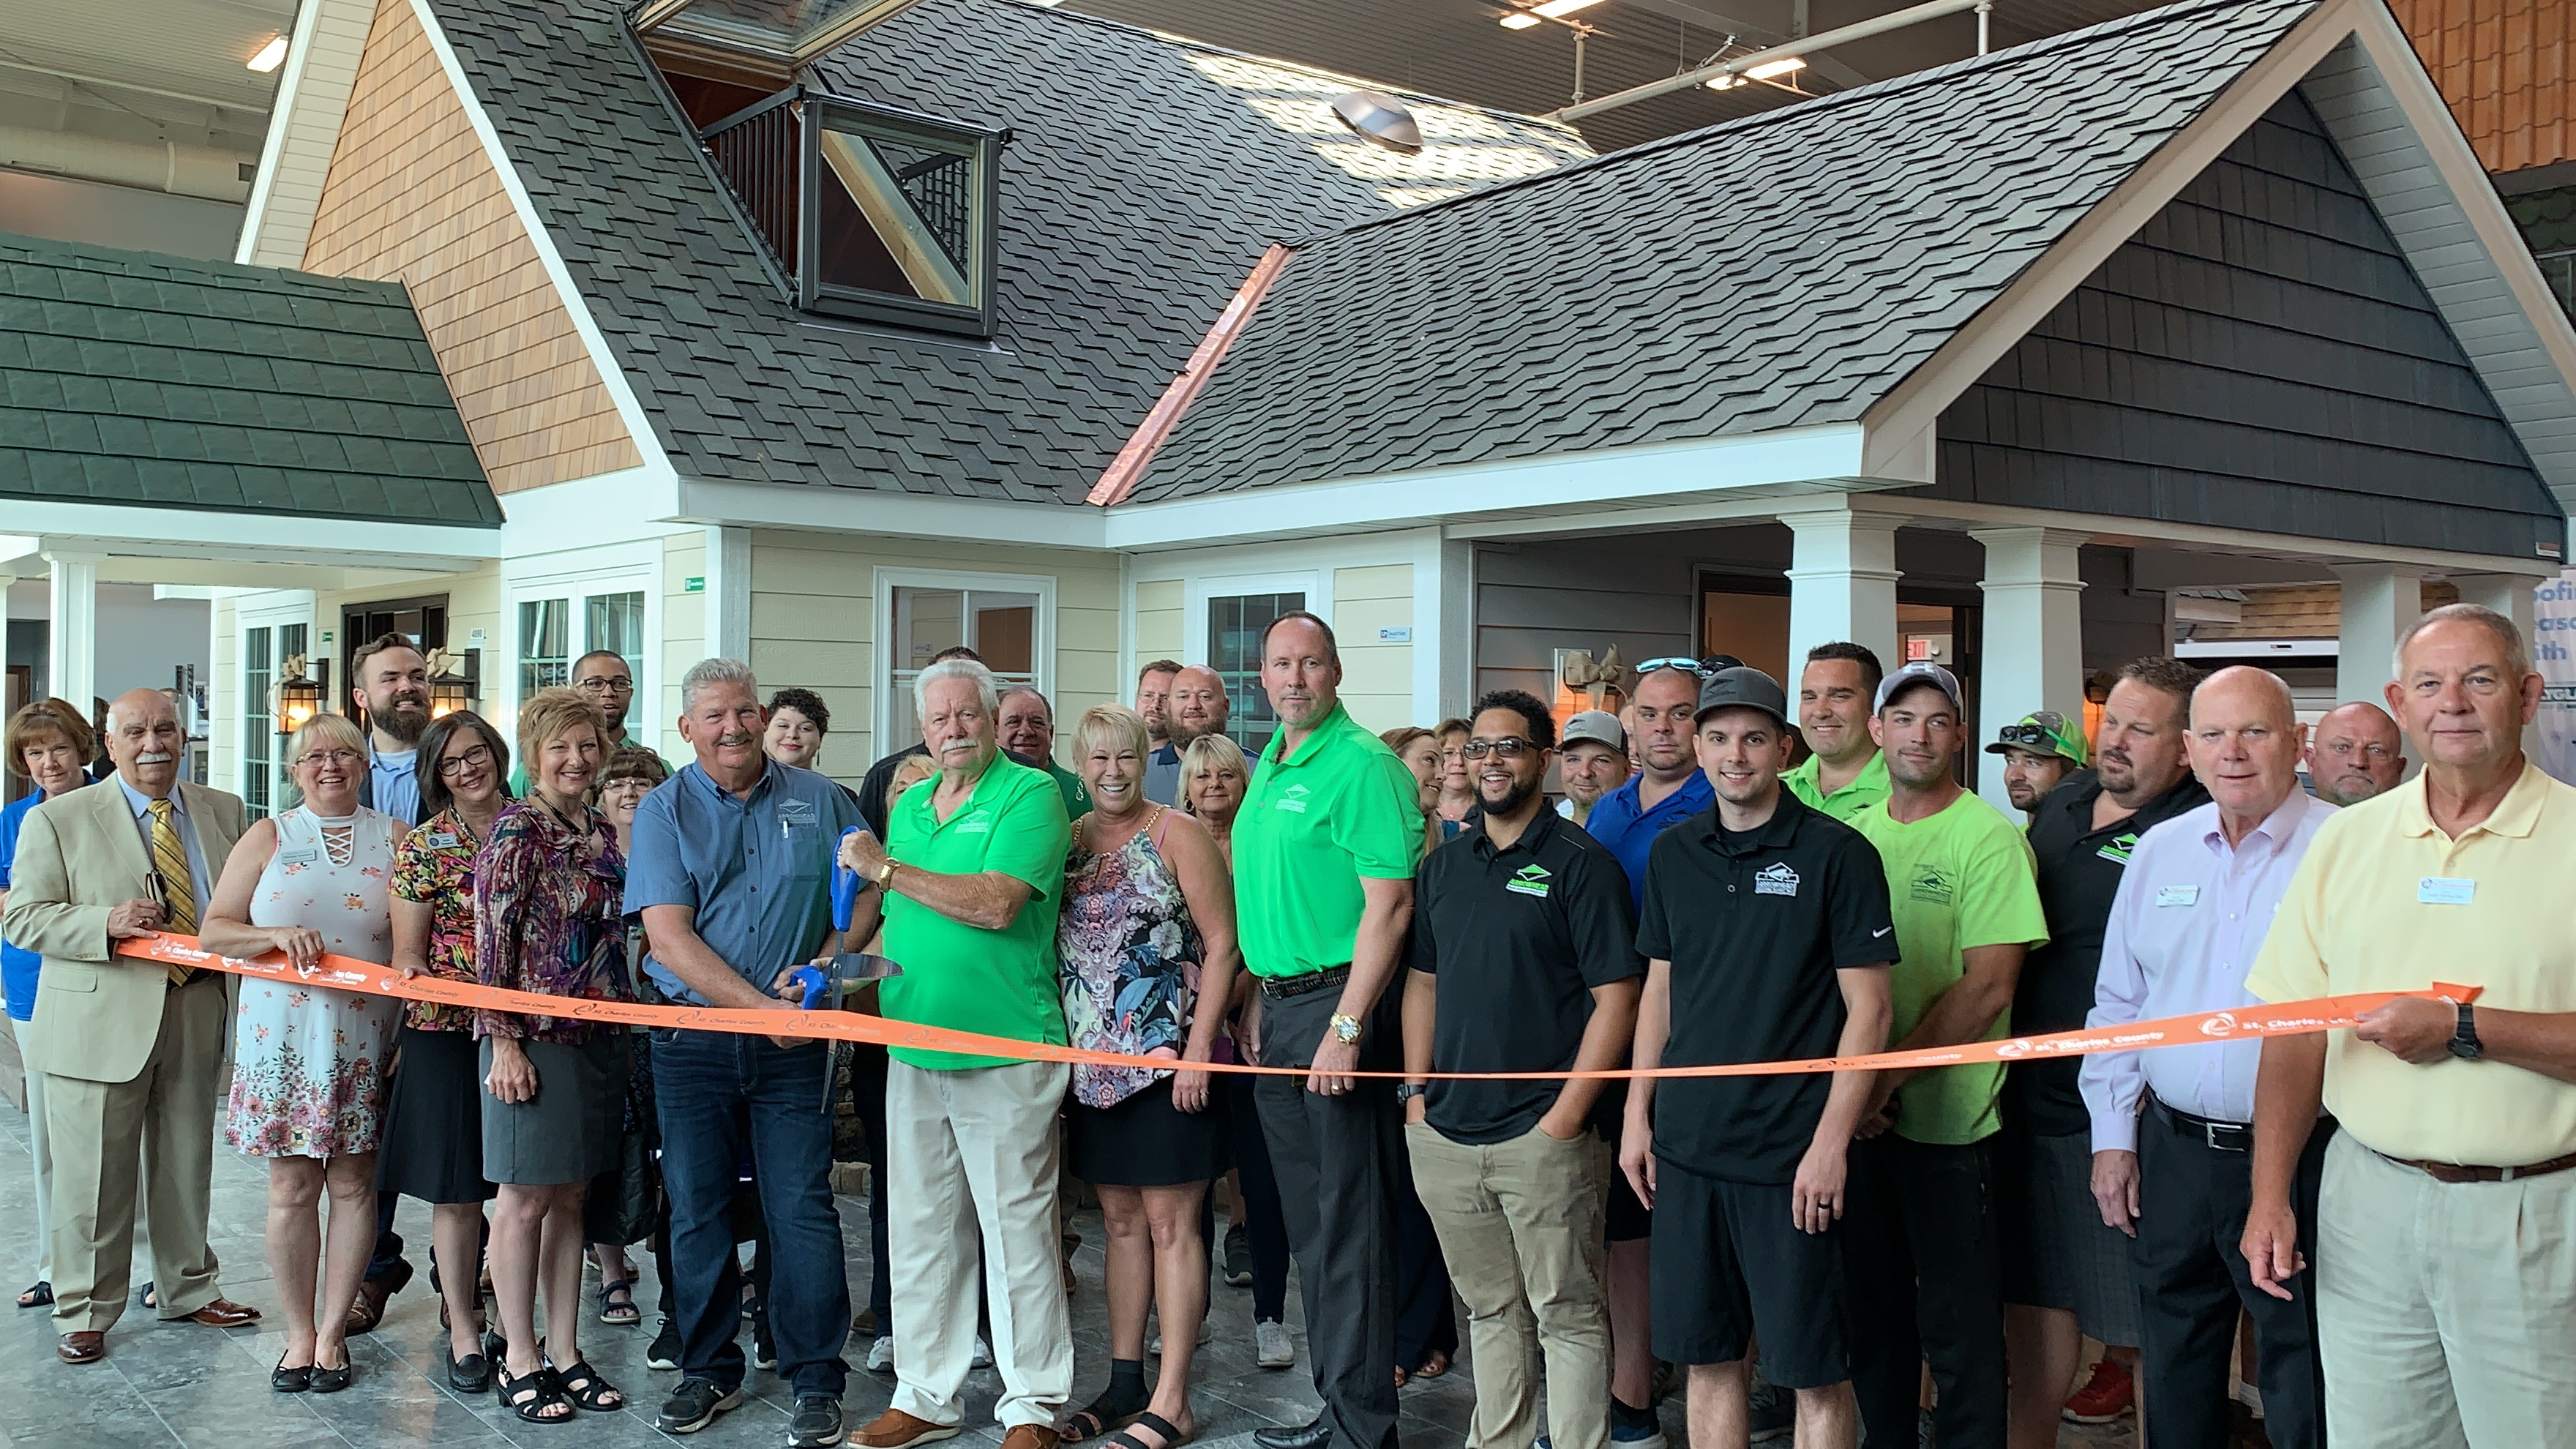 Arrowhead Building Supply, Inc. Celebrates New Building with Ribbon Cutting